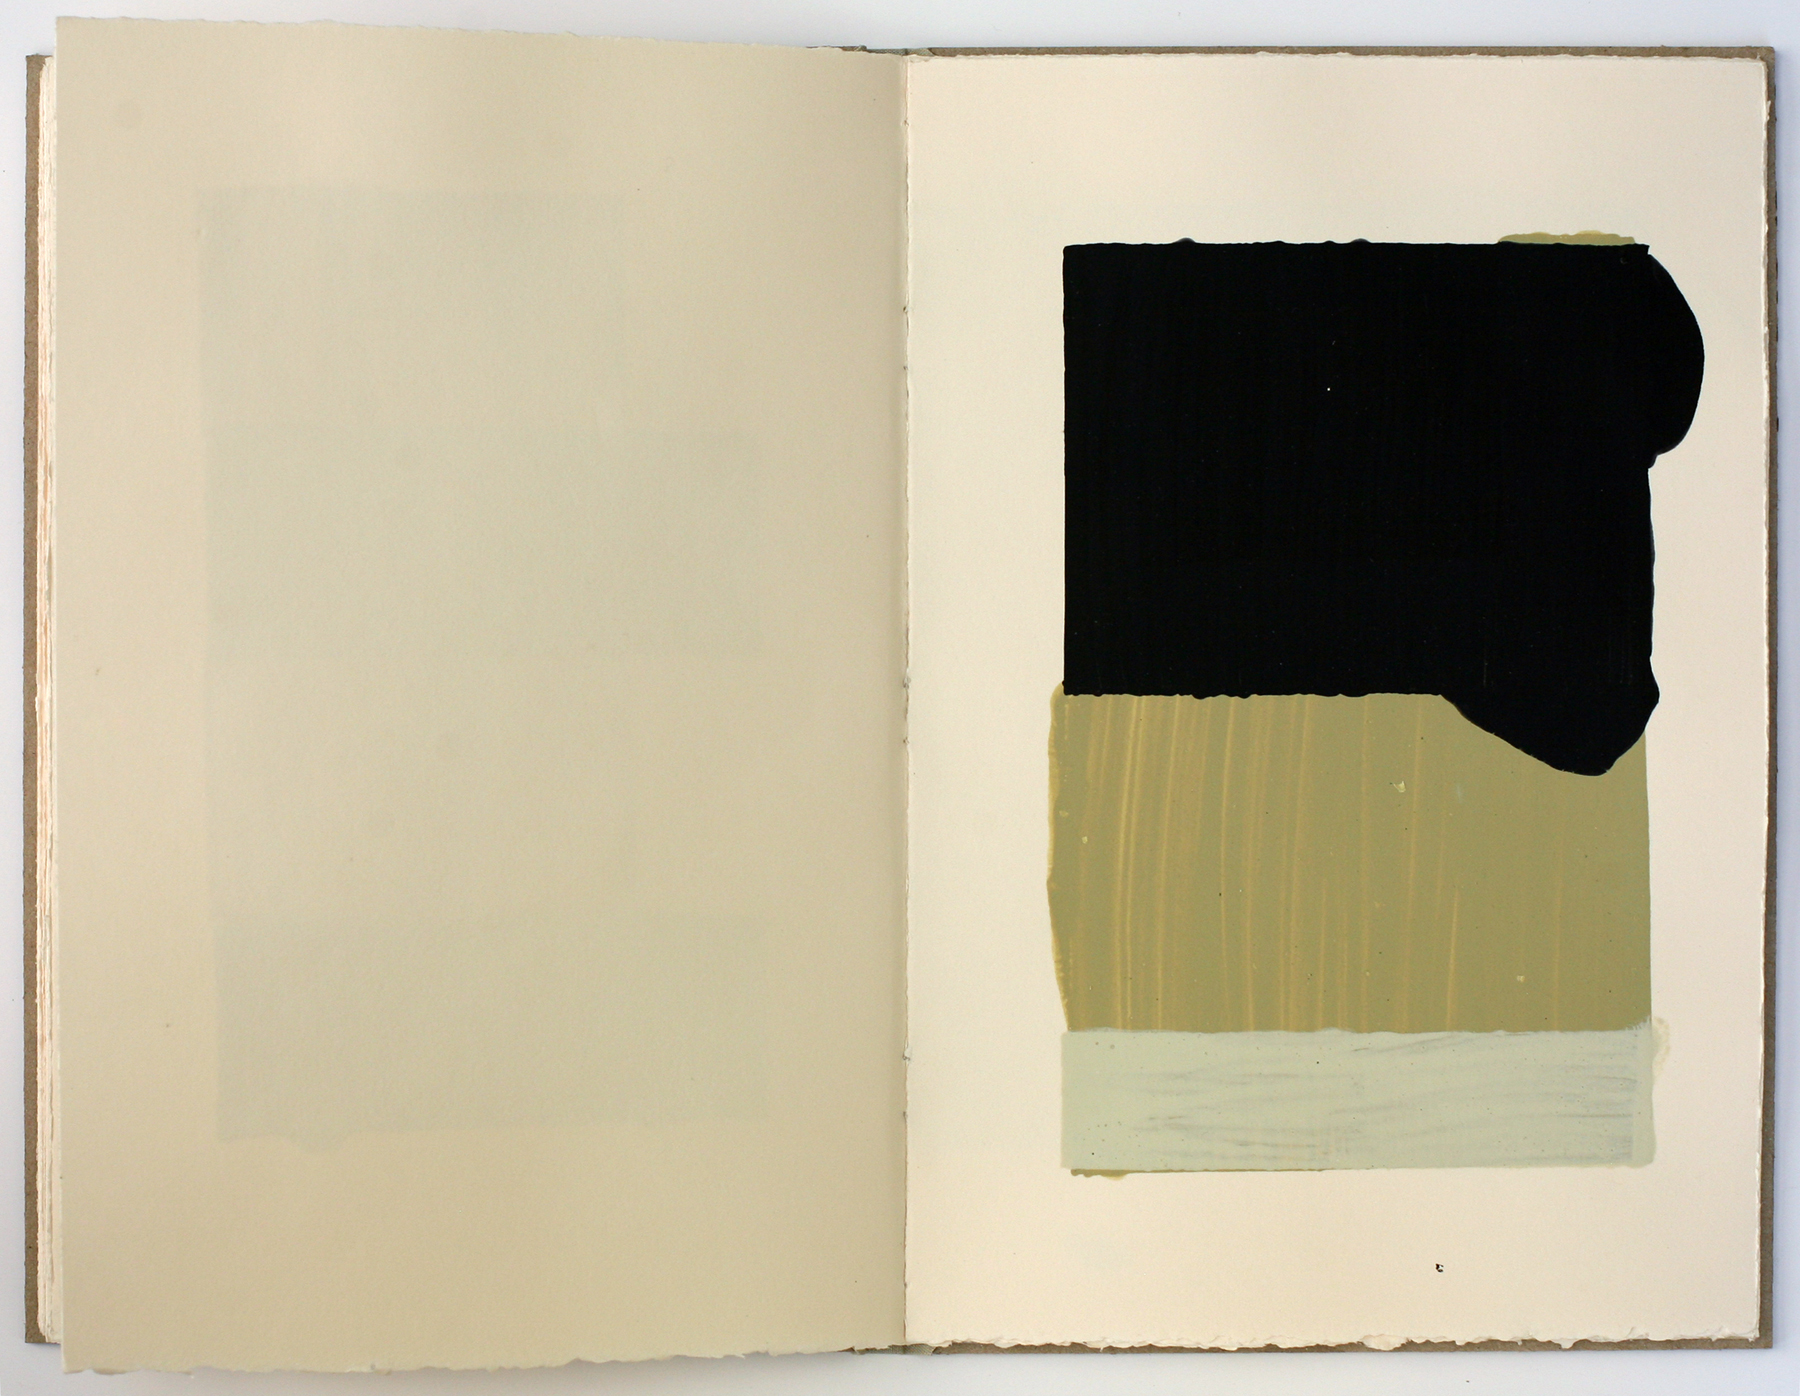 G. Lekeu, edition of 10. 2014 (in 4 private collections)